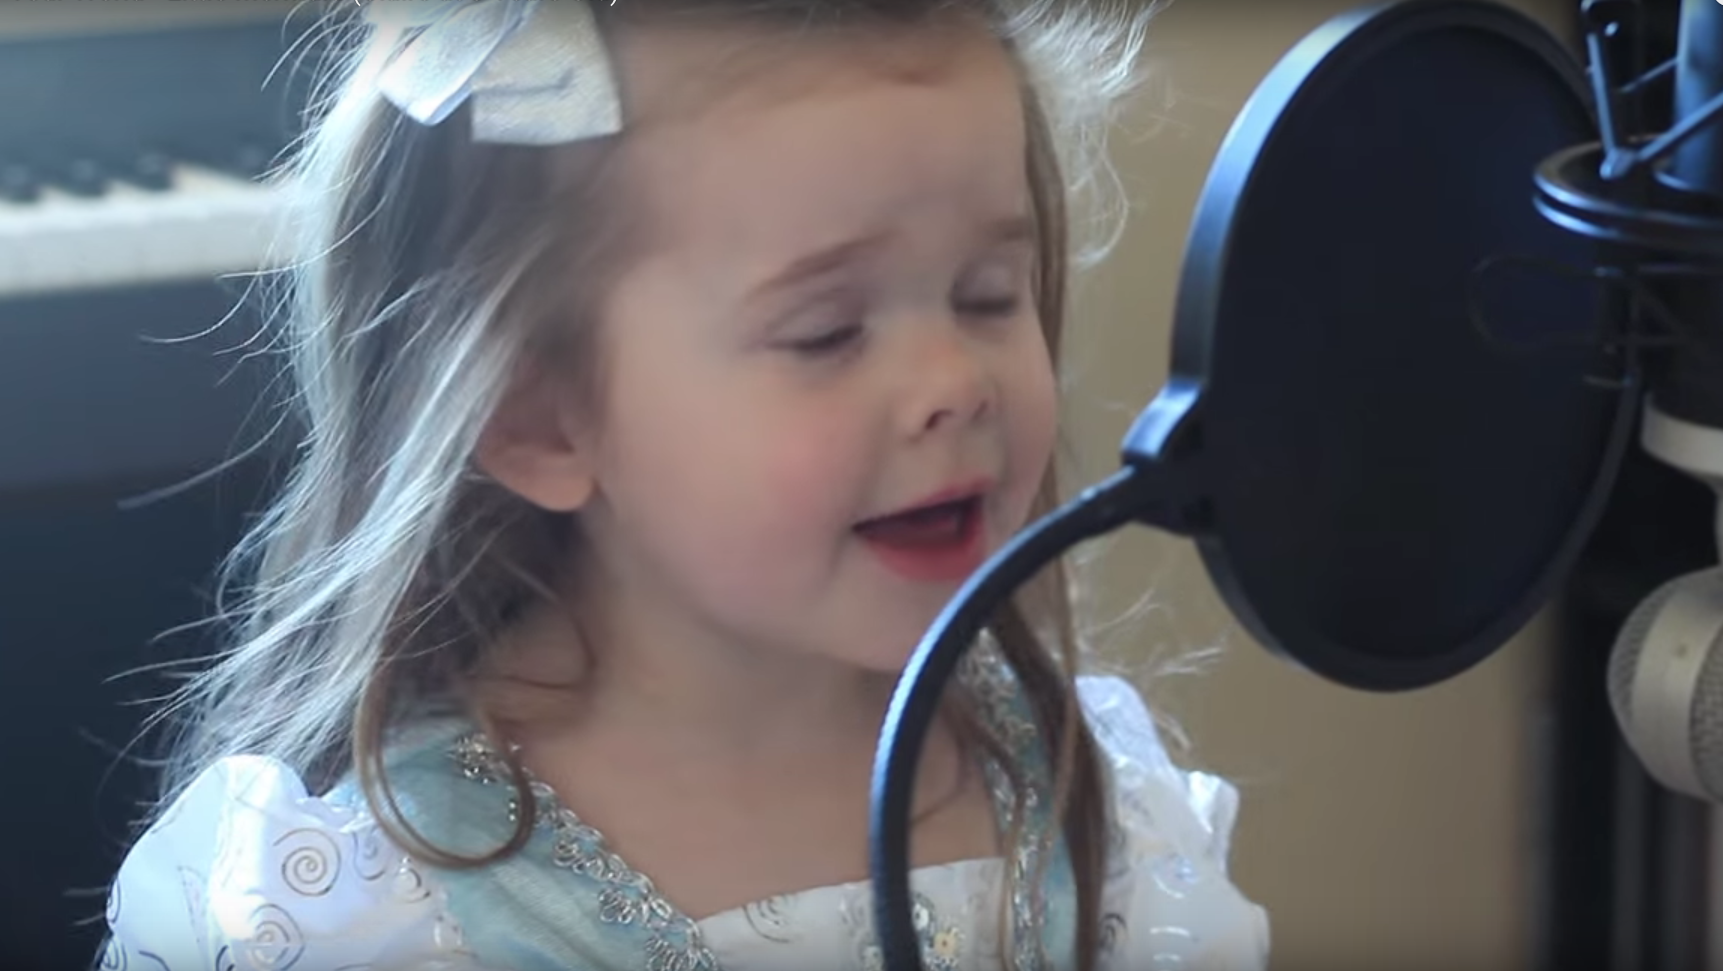 Little Girl Singing a Disney Song will melt your heart